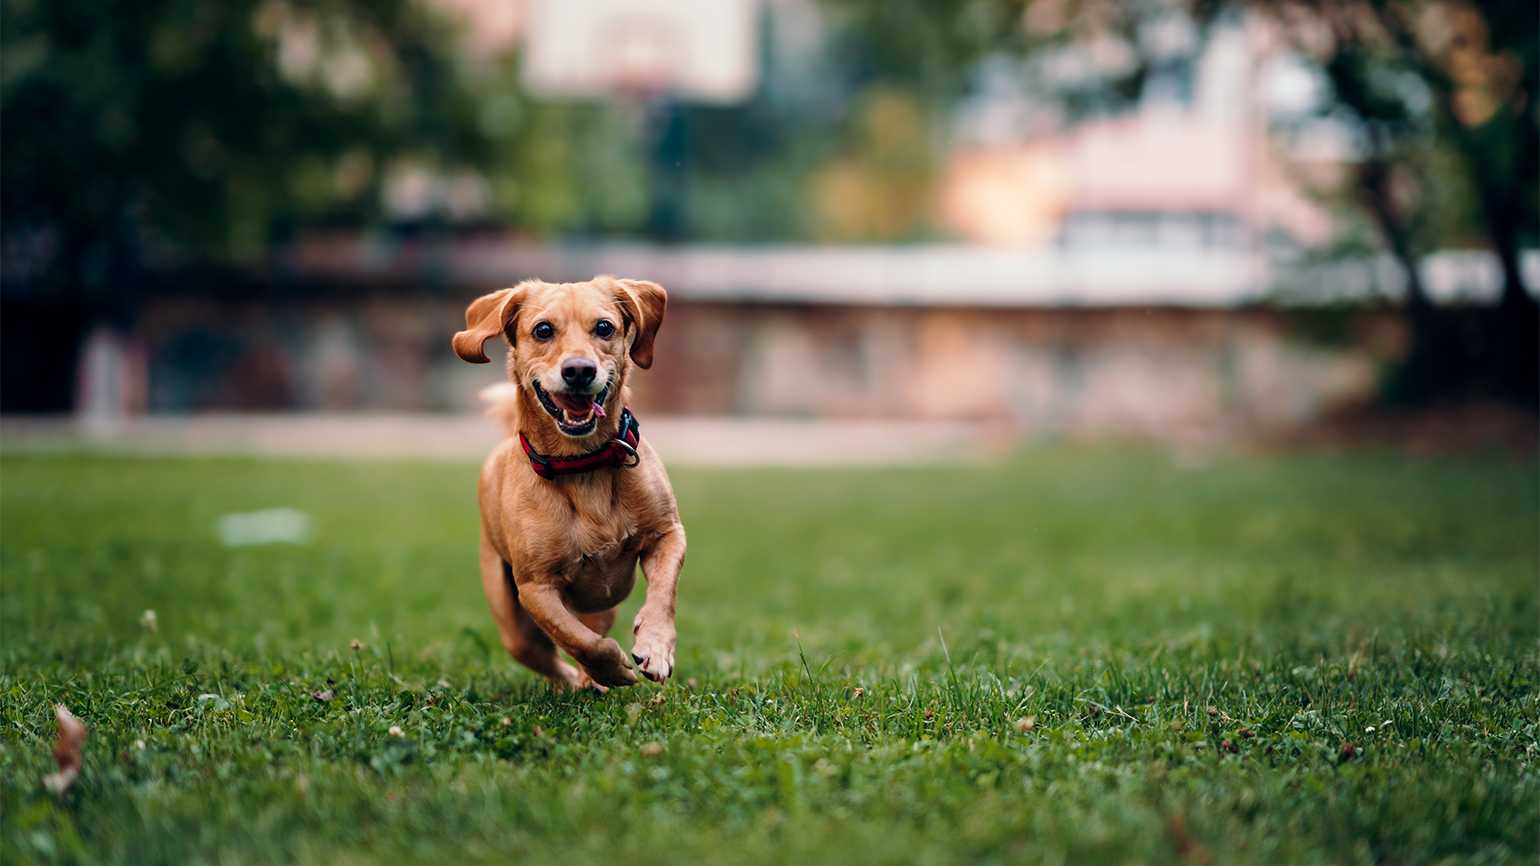 Helpful Tips to Find Your Missing Dog